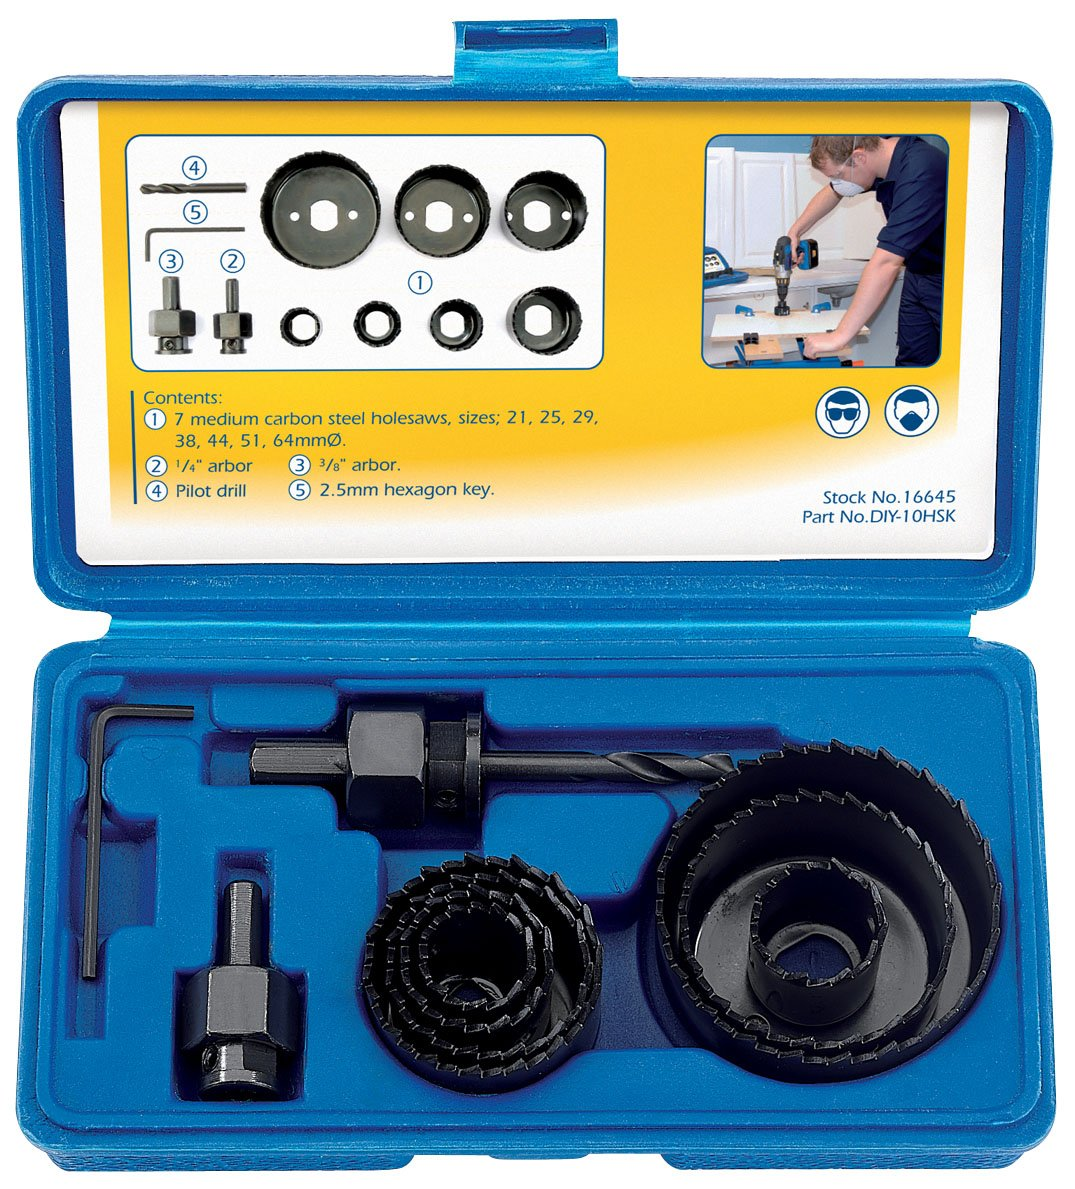 Draper Diy Series 16645 11 Piece Hole Saw Kit Tools Silverline Non Contact Ac Voltage Detector 140mm Electrical Tool